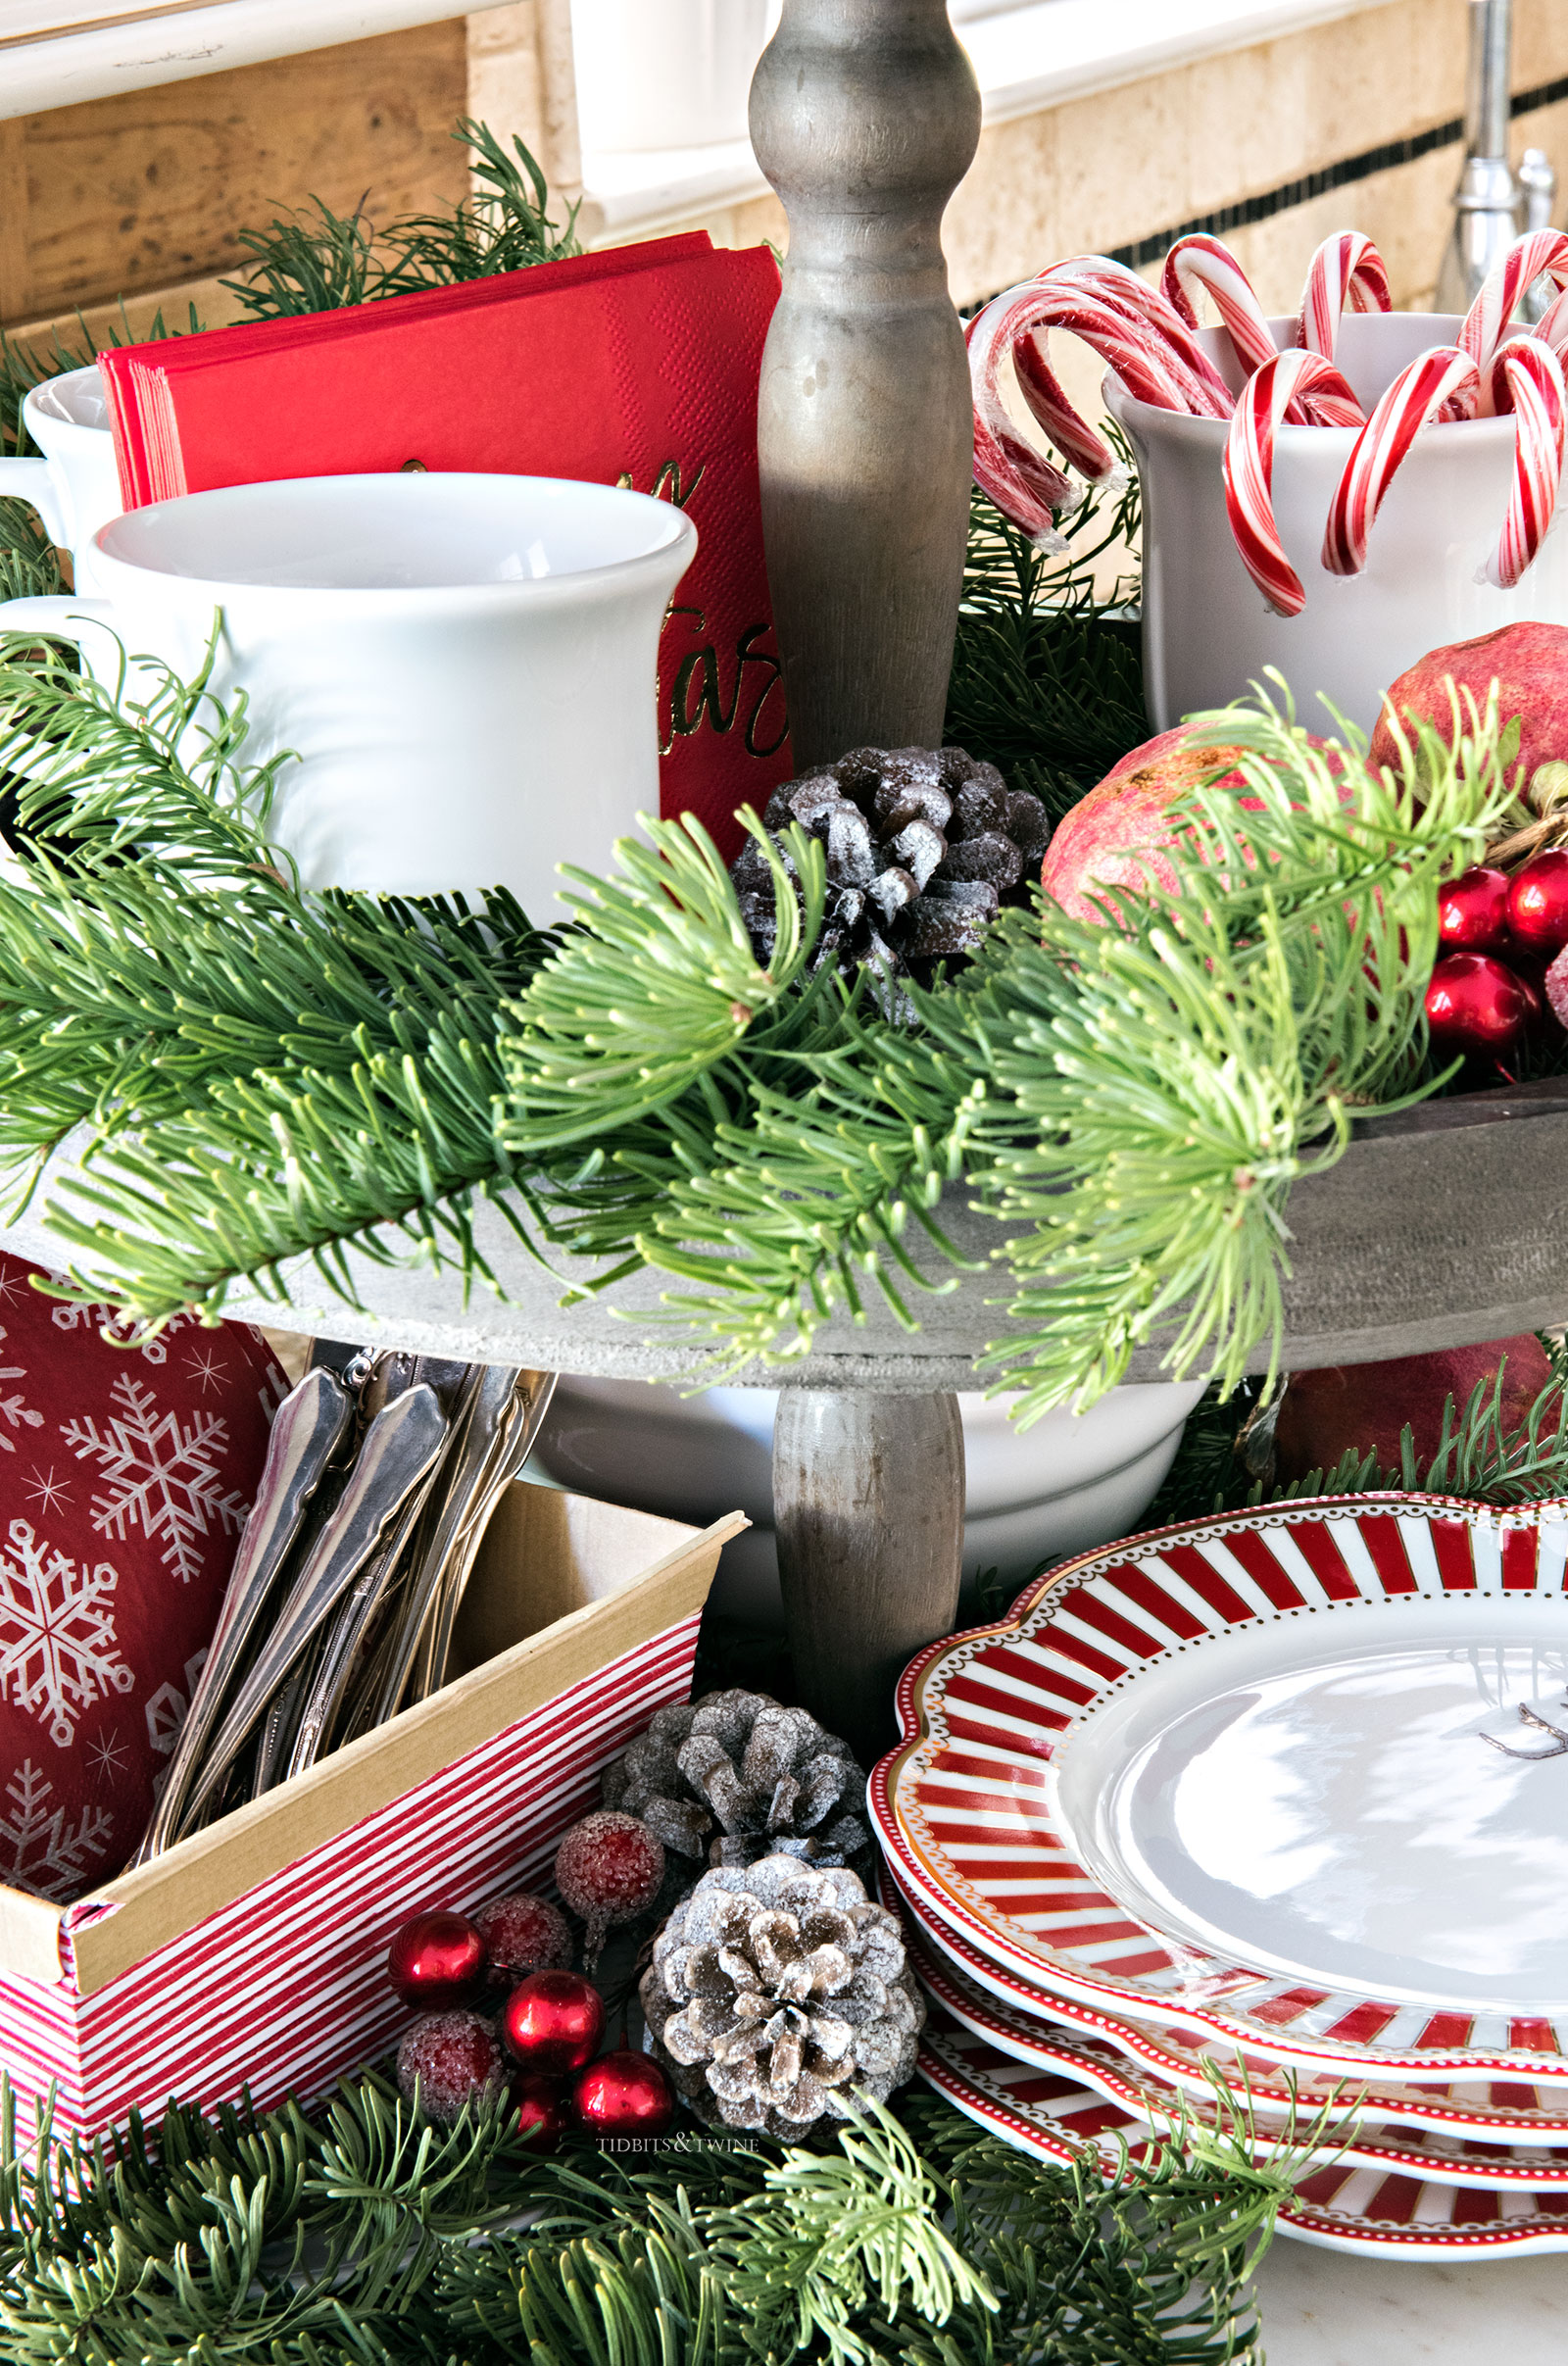 Tiered wooden tray with Christmas greens and berries white mugs with candy canes and hot chocolate